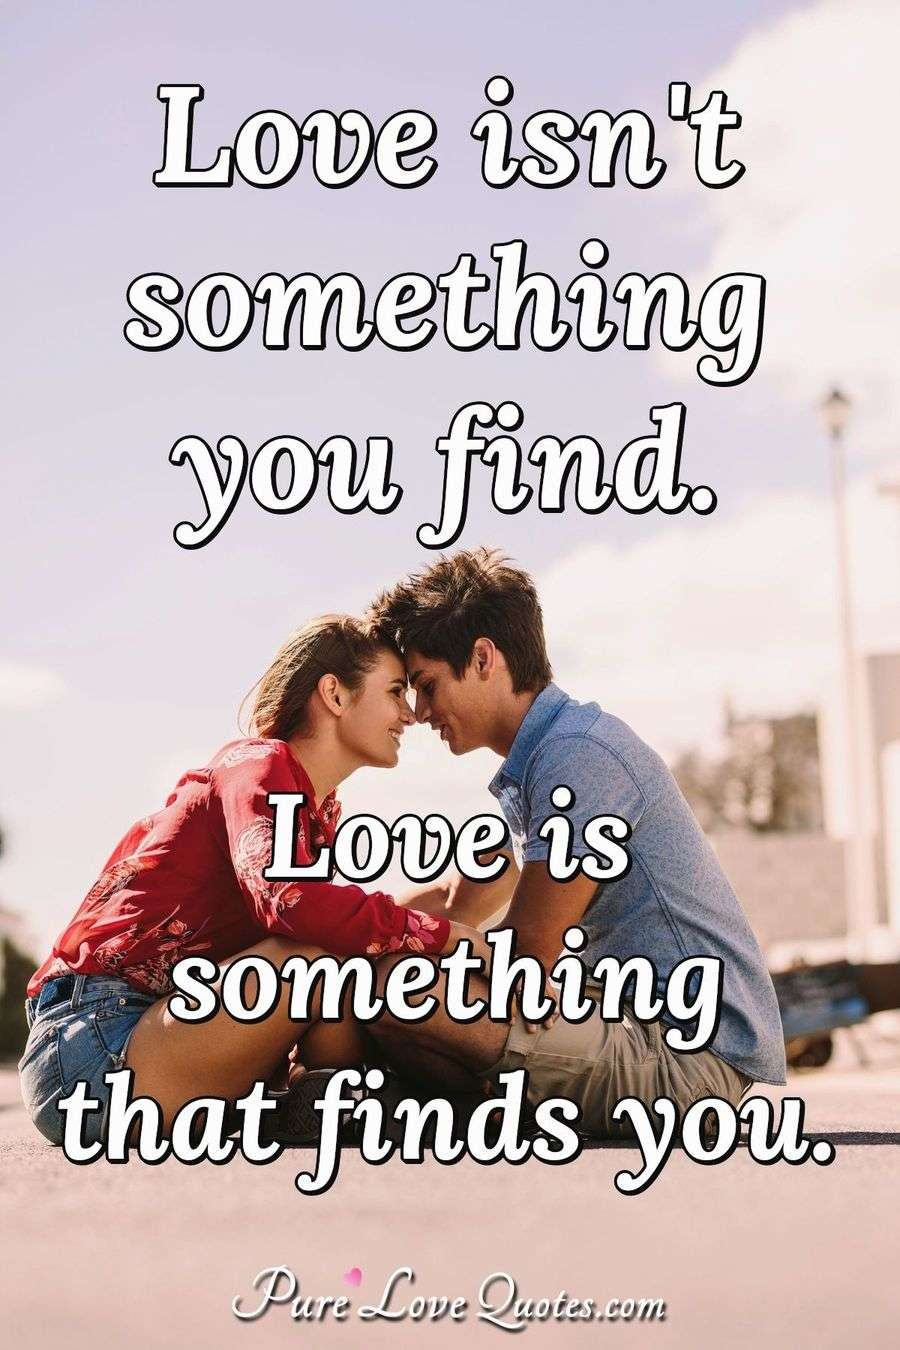 When Love Finds You Quotes: Love Isn't Something You Find. Love Is Something That